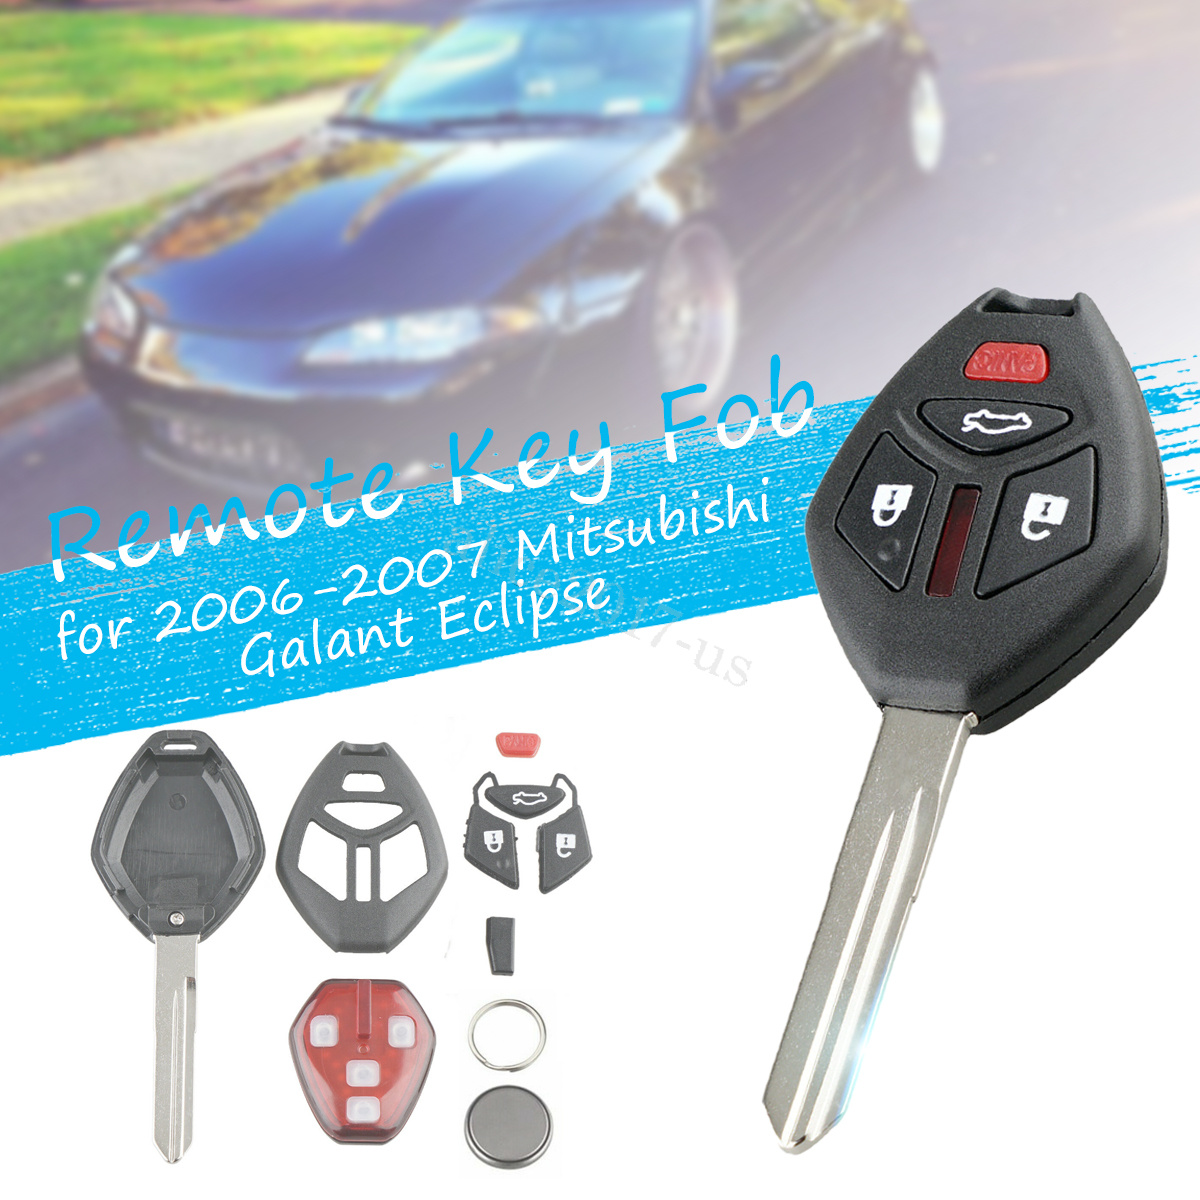 Lot of 2 New Replacement Car Remote Key Entry Fob Control For Galant OUCG8D620MA